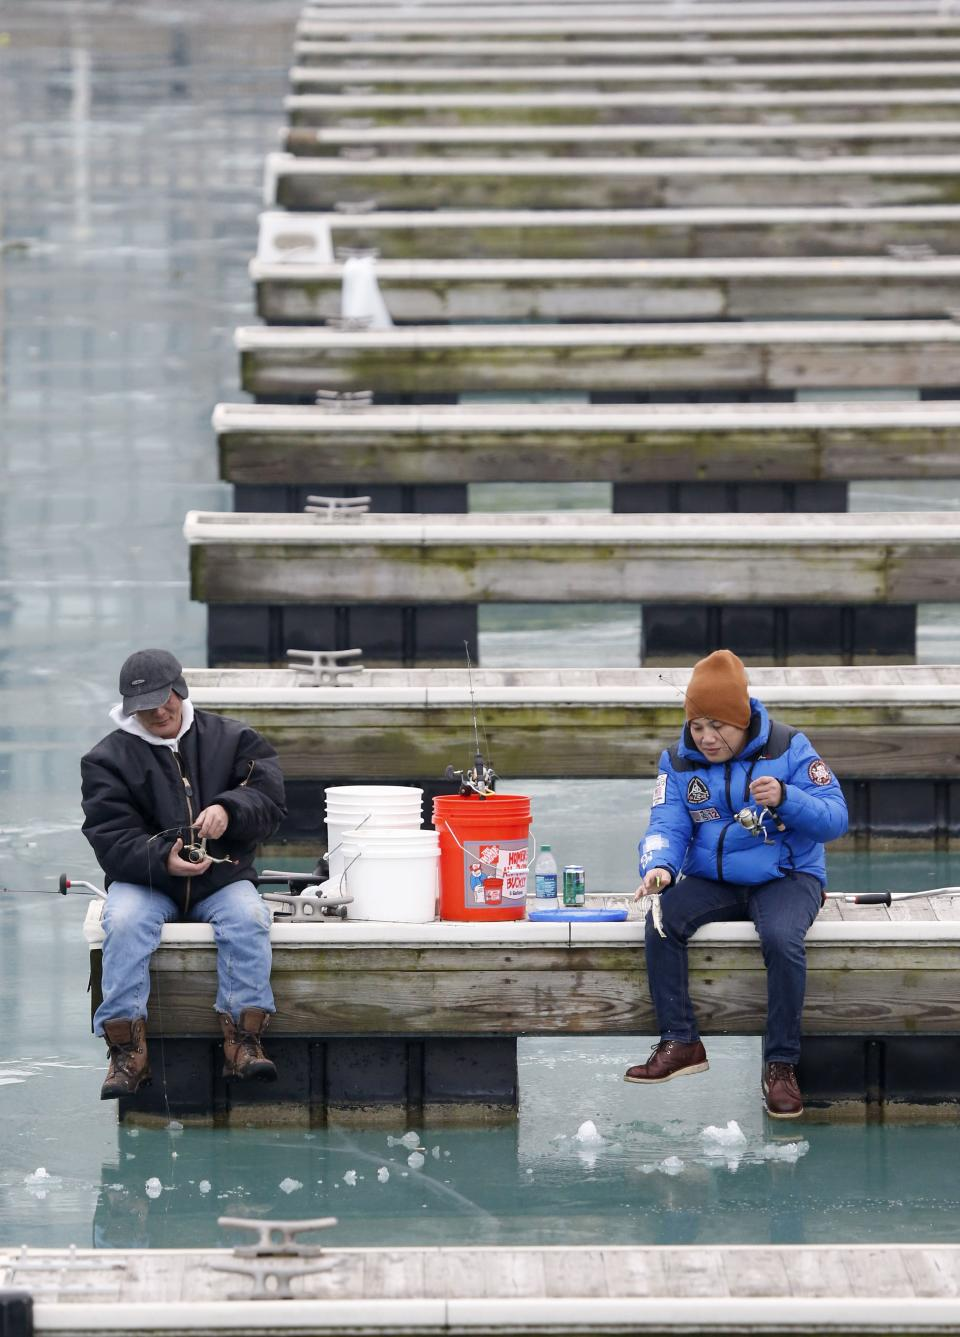 Despite unseasonably warm temperatures two men ice fish in Chicago's Belmont Harbor along Lake Michigan Tuesday, Jan. 29, 2013, in Chicago. Unseasonably warm temperatures broke records in the Chicago area with thunderstorm expected to usher in freezing temperatures and snow Wednesday. (AP Photo/Charles Rex Arbogast)